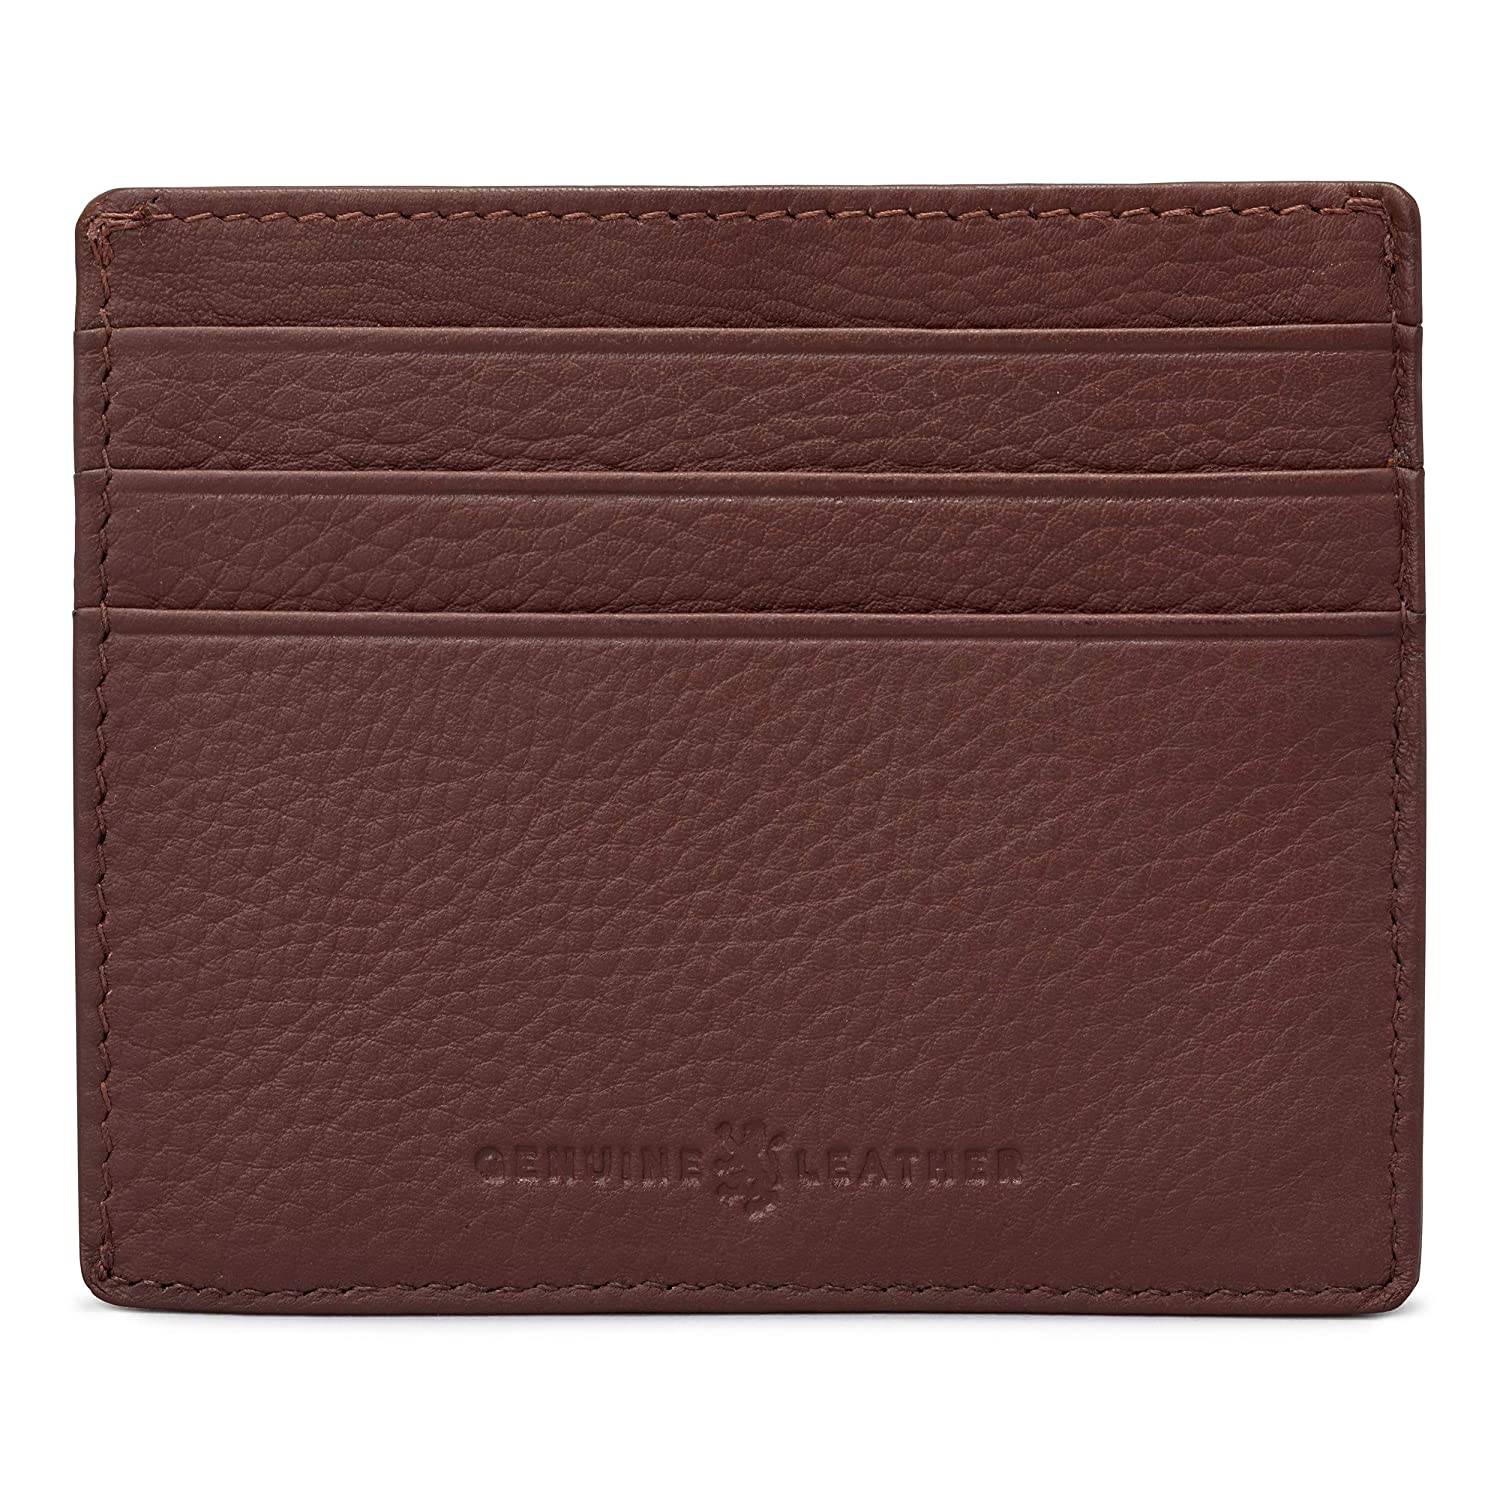 b765603811e39 Hoxton Slim Leather Credit Card Holder Wallet by Gryphen (Brown)   Amazon.co.uk  Shoes   Bags